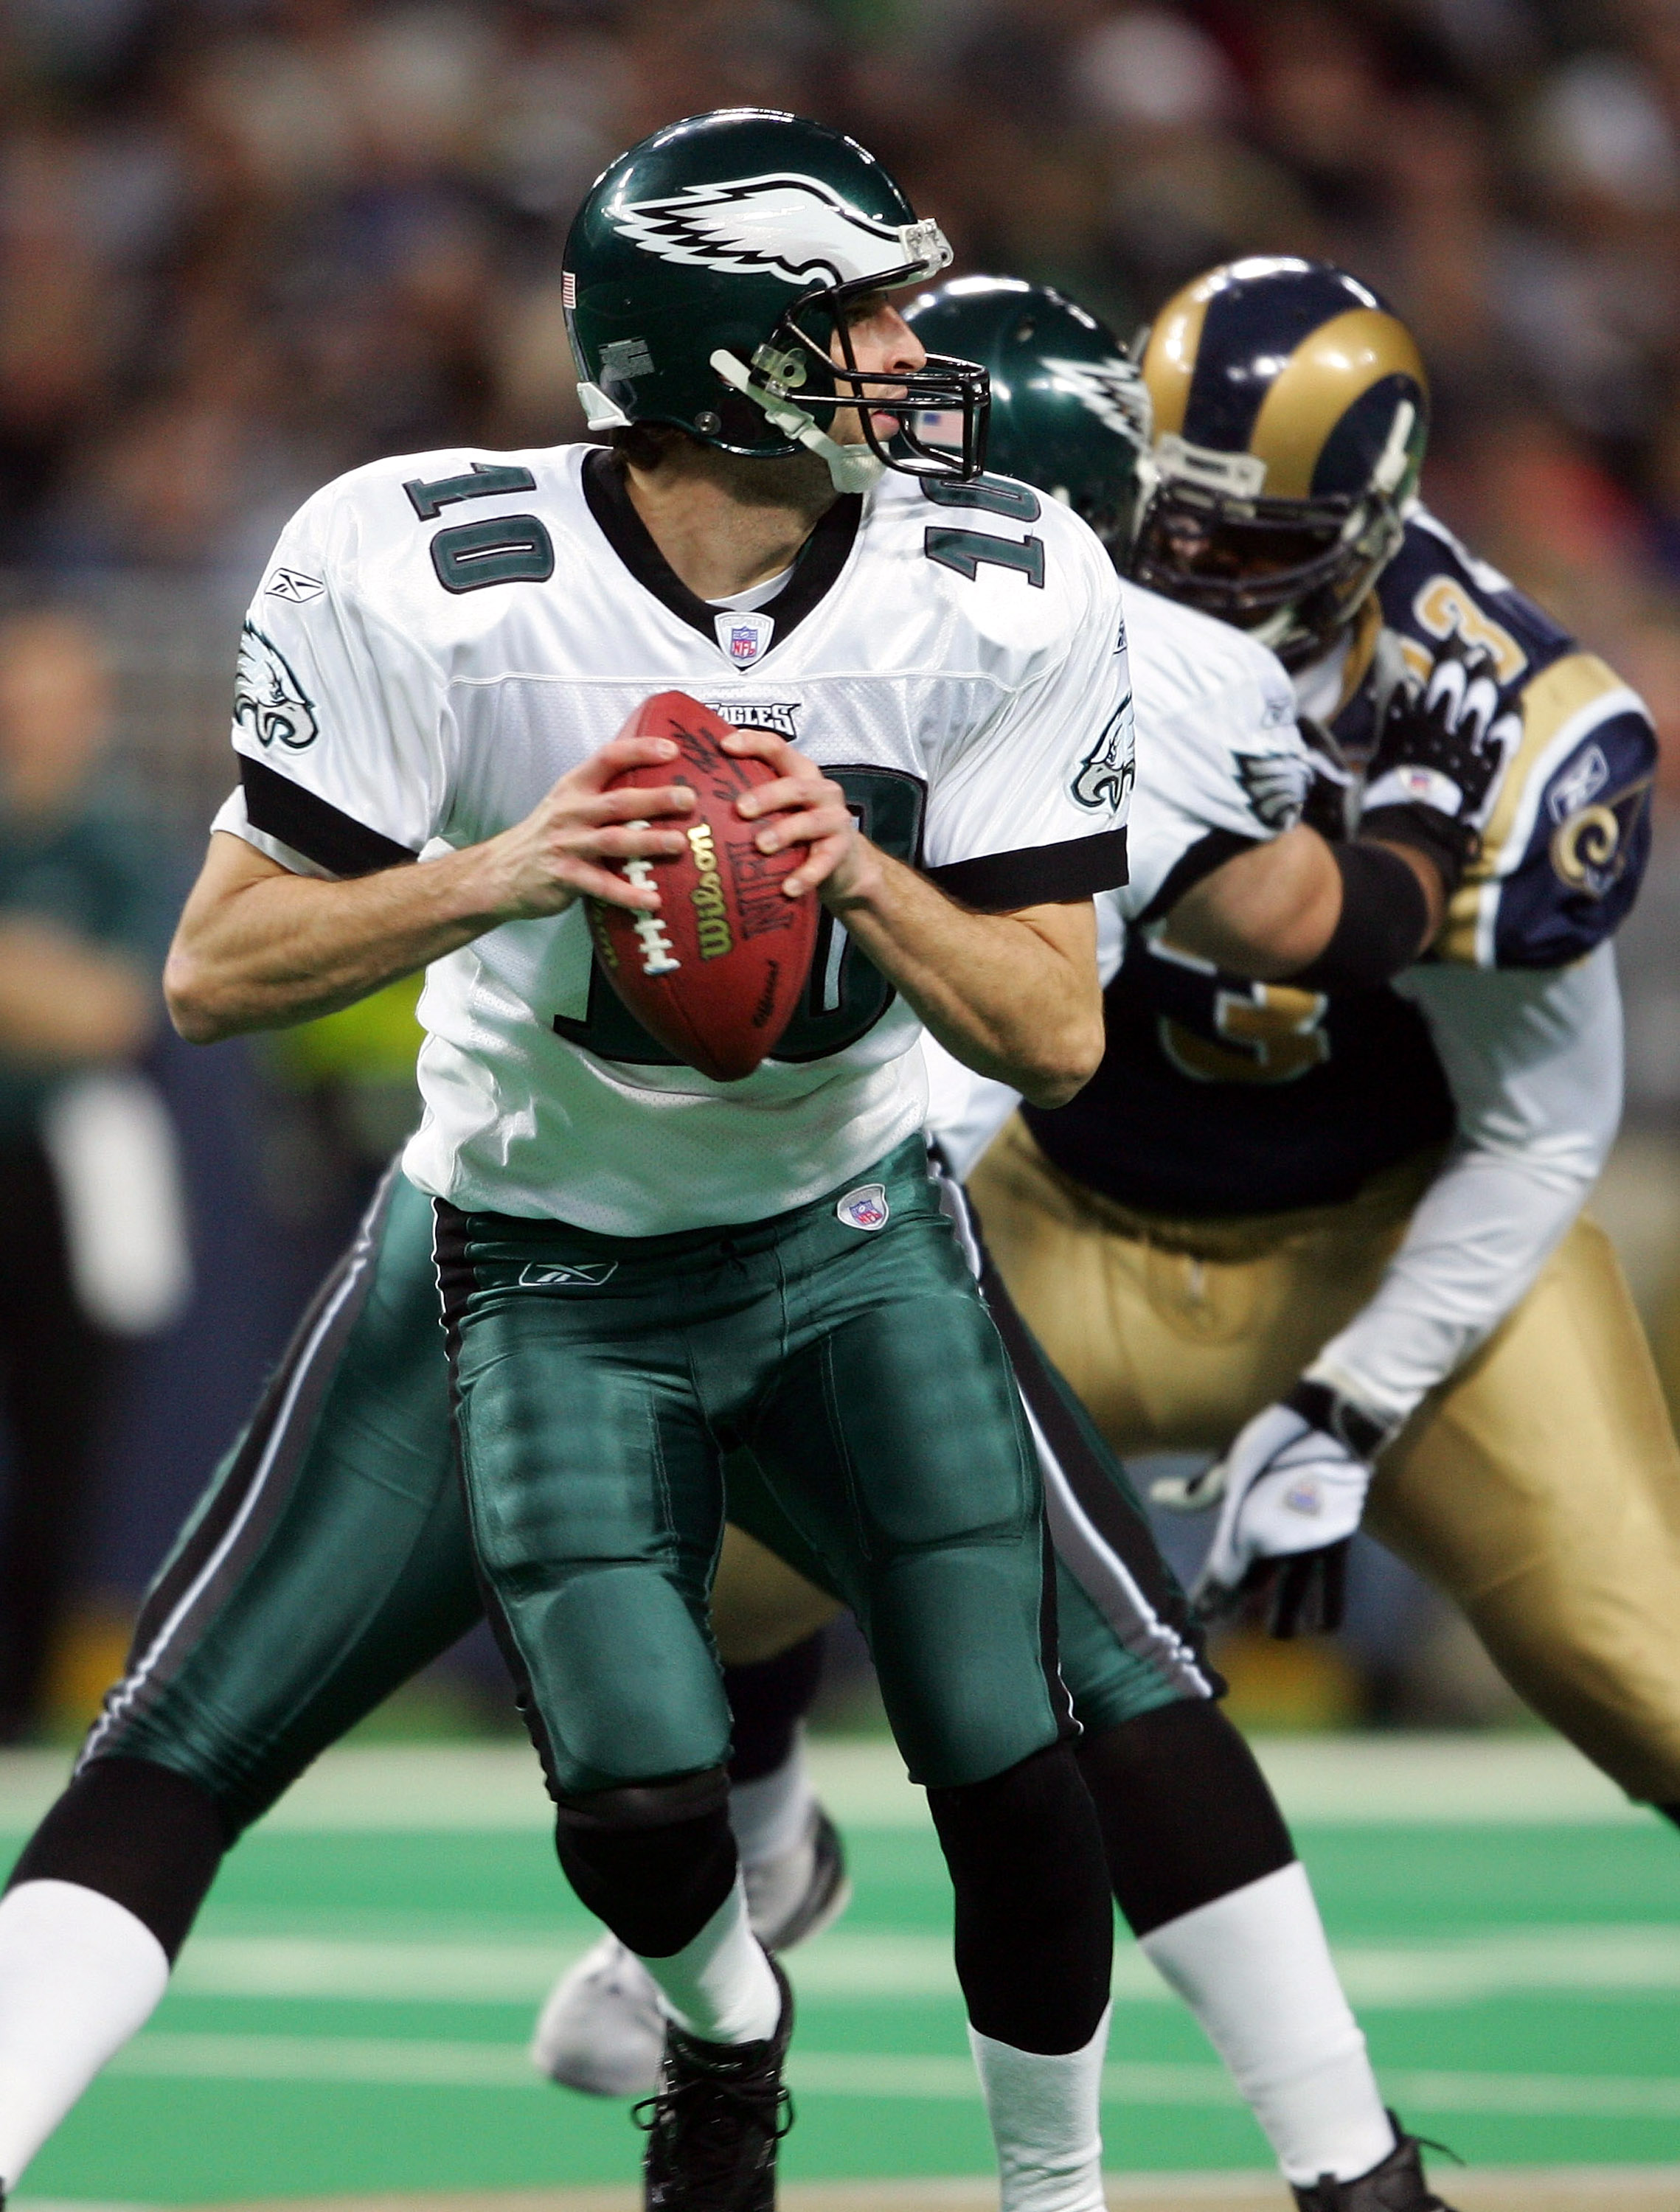 ST.LOUIS - DECEMBER 27:  Koy Detmer #10 of the Philadelphia Eagles drops back to pass  against the St. Louis Rams on December 27, 2004 at the Edward Jones Dome in St. Louis, Missouri.  (Photo by Elsa/Getty Images)